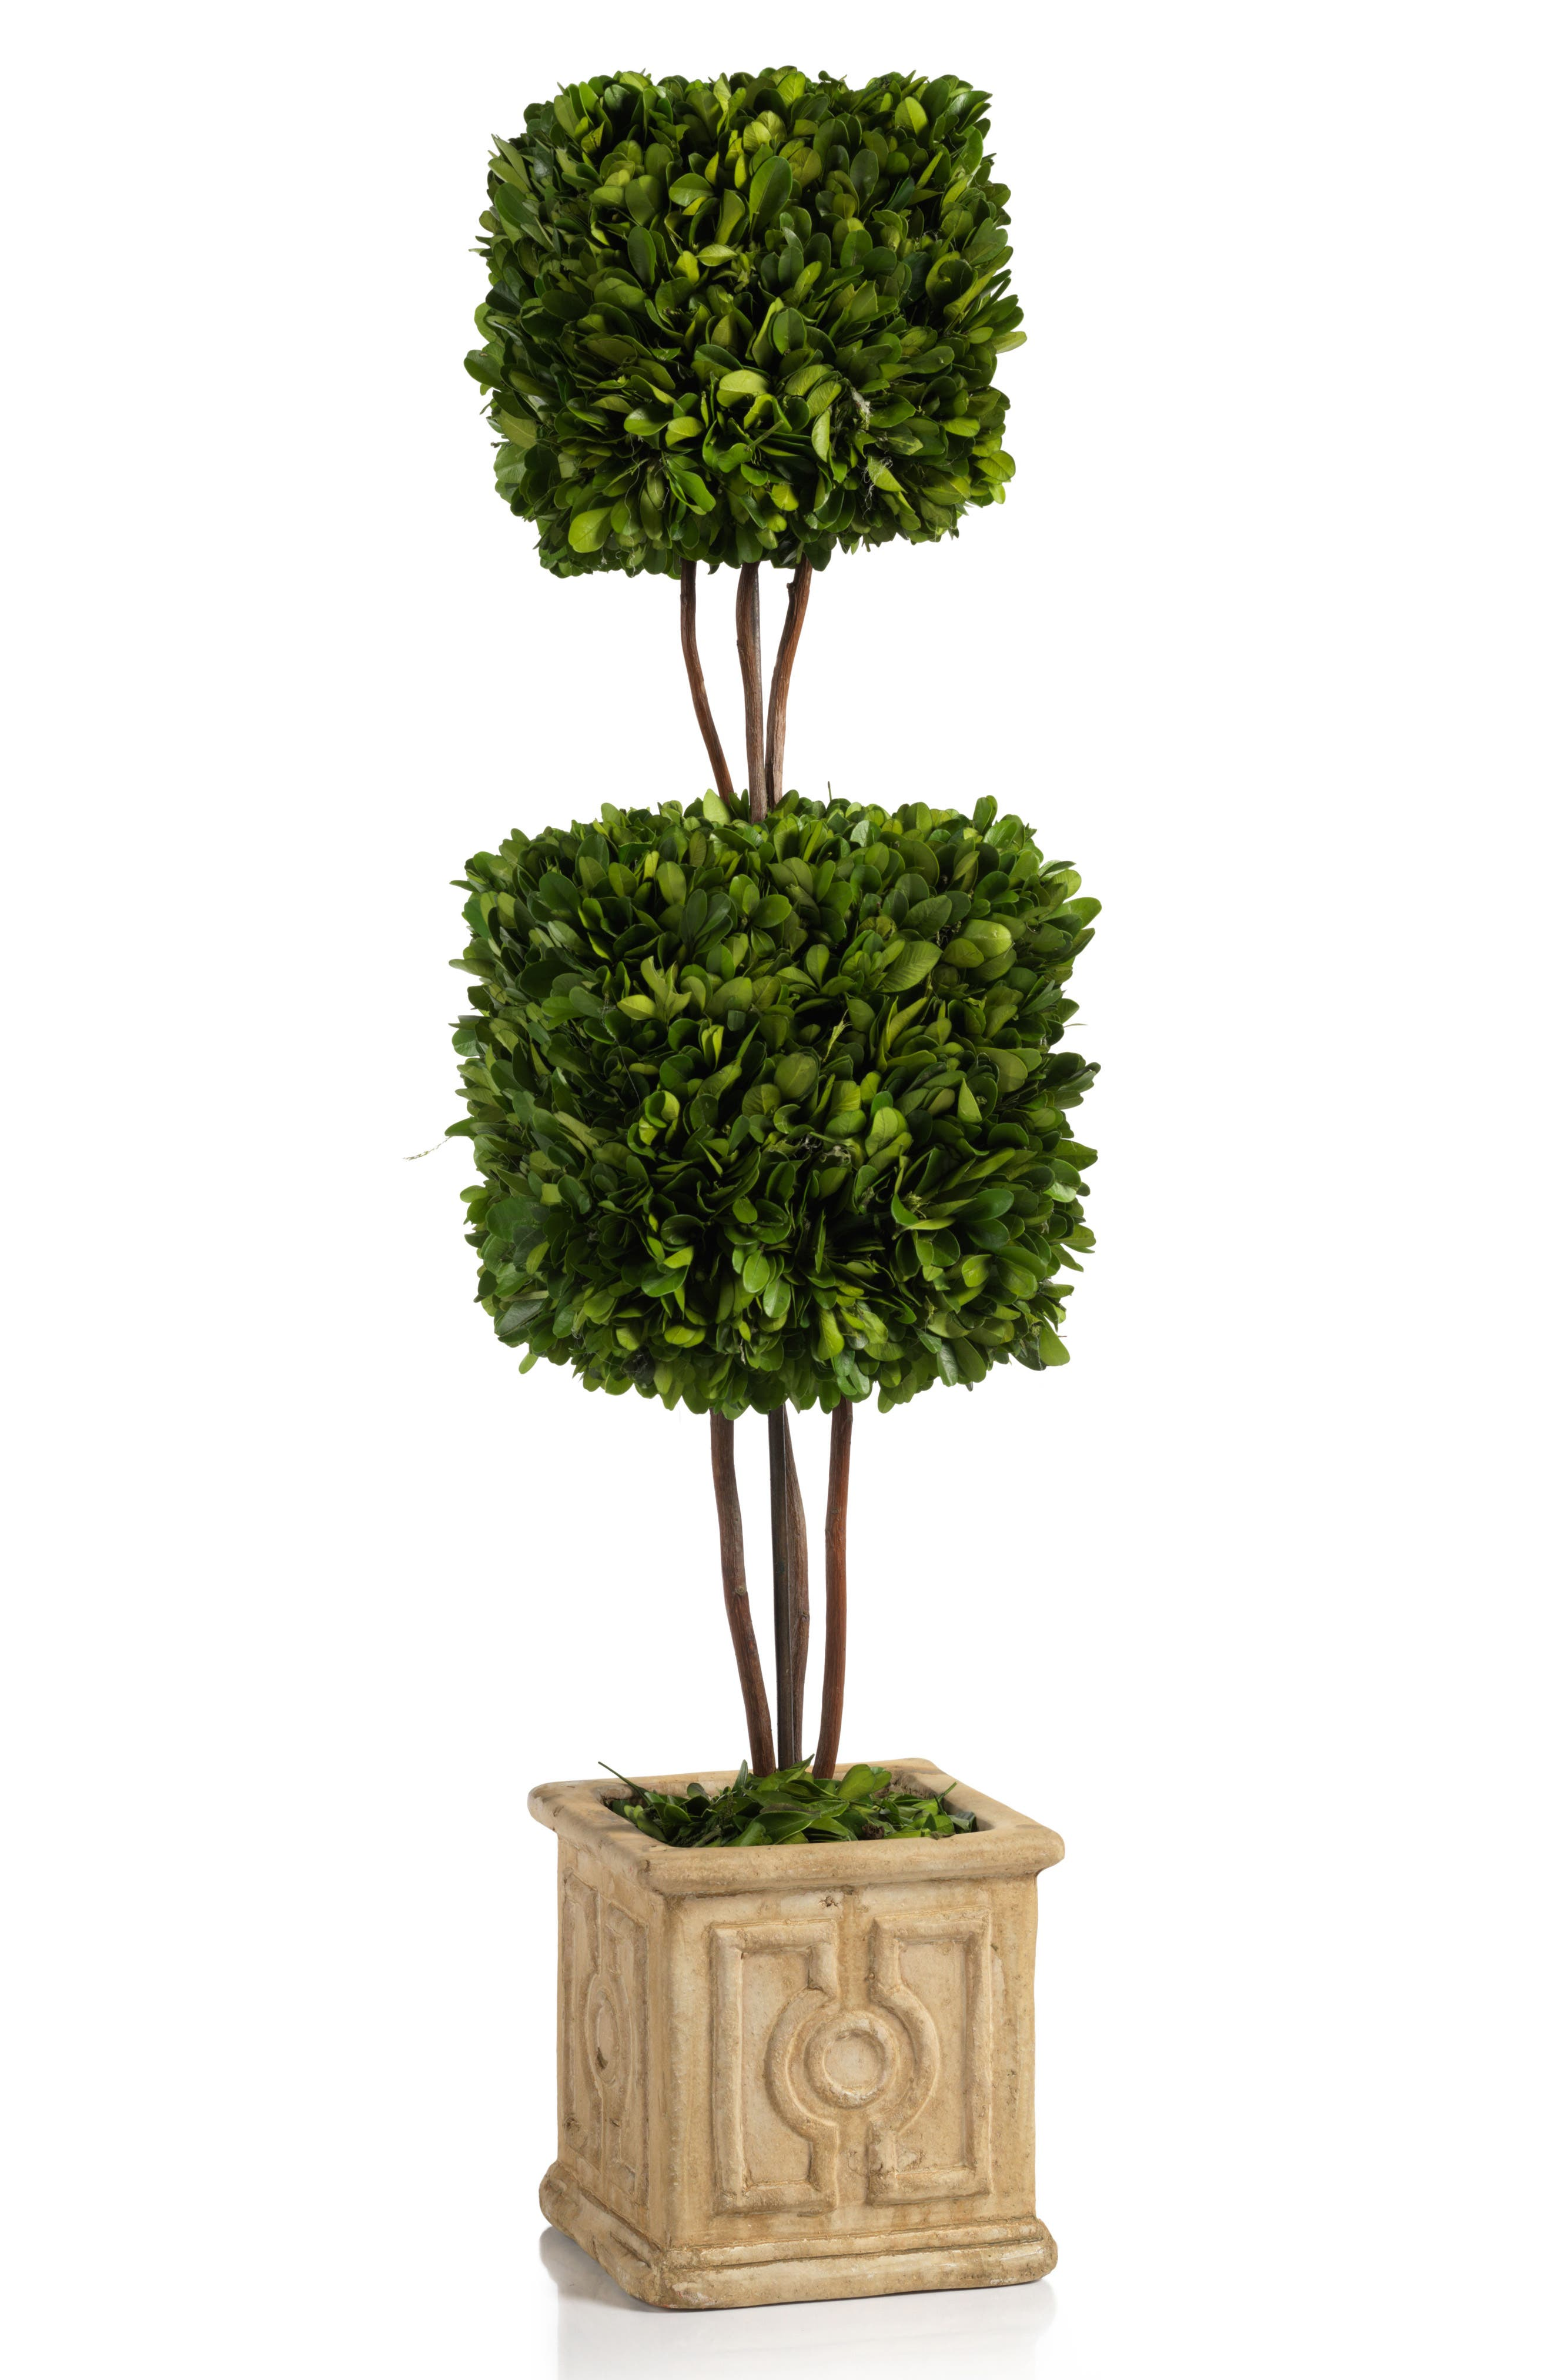 Zodax Cinza Boxwood Topiary Decoration